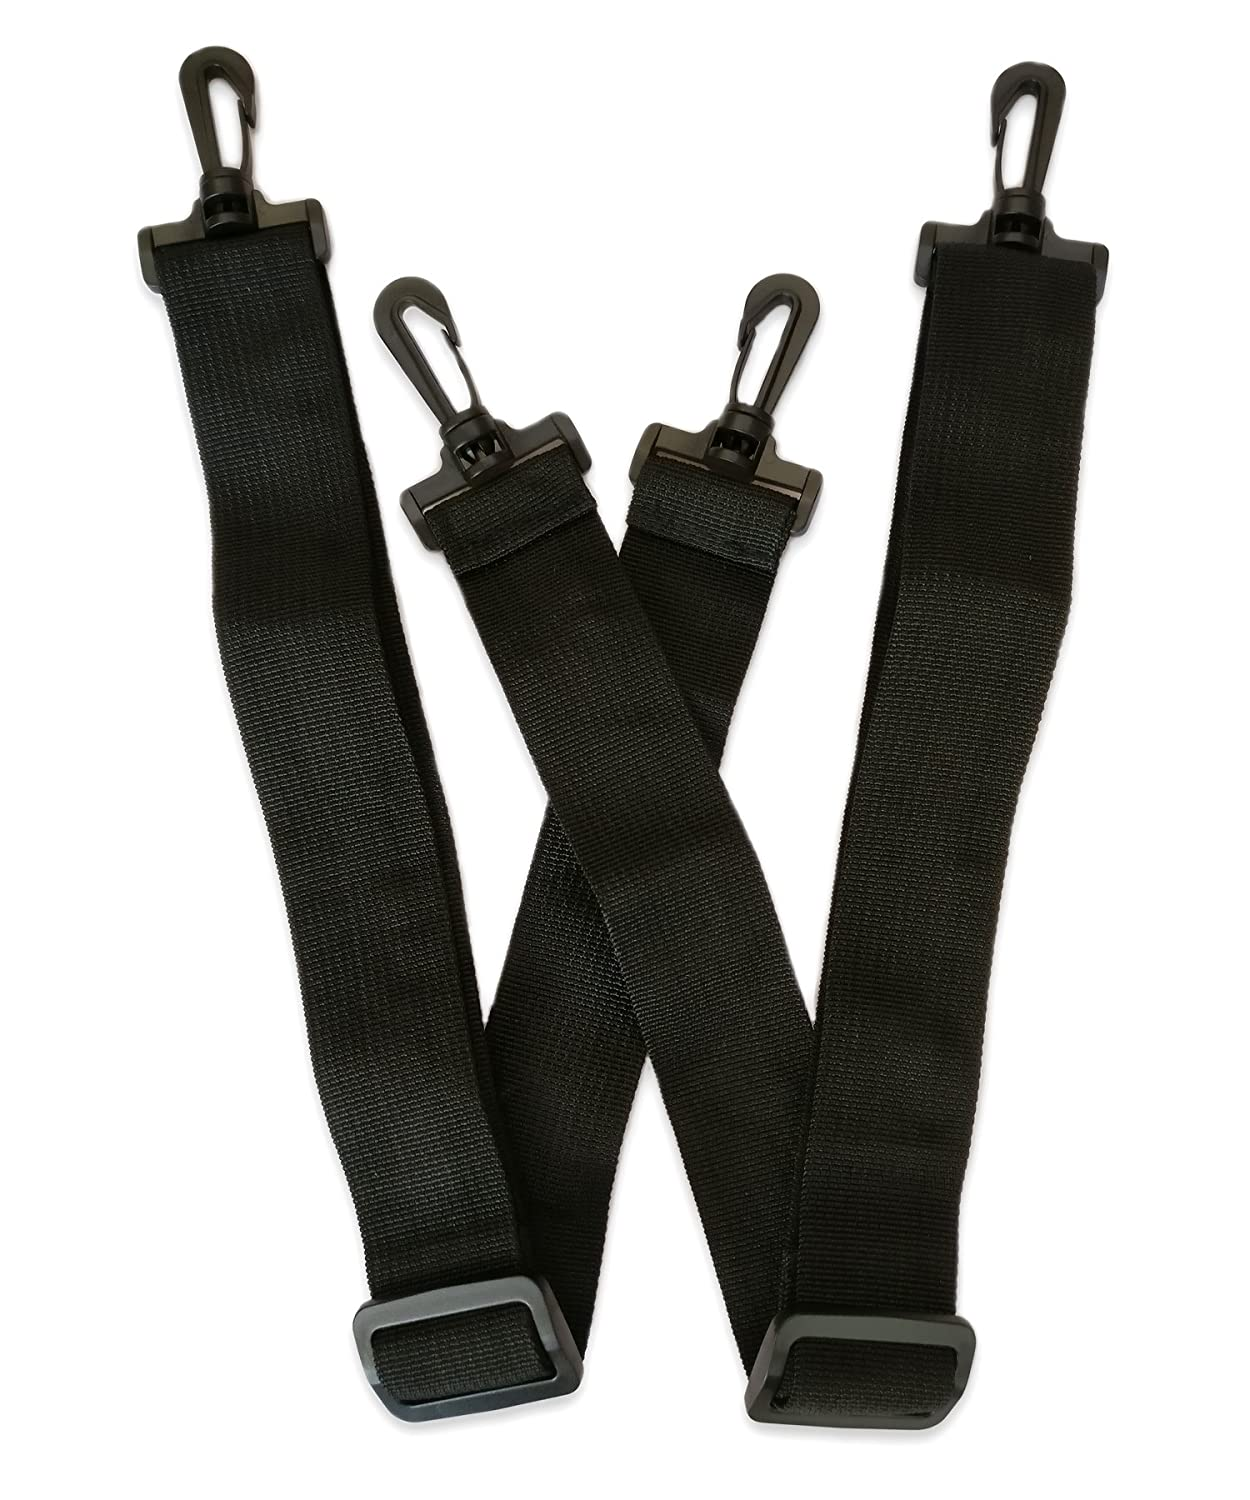 Bag Strap Duffle Bag Straps for Luggage Shoulder Strap Replacement Black 2-Pack by SUPERSINGULARITY